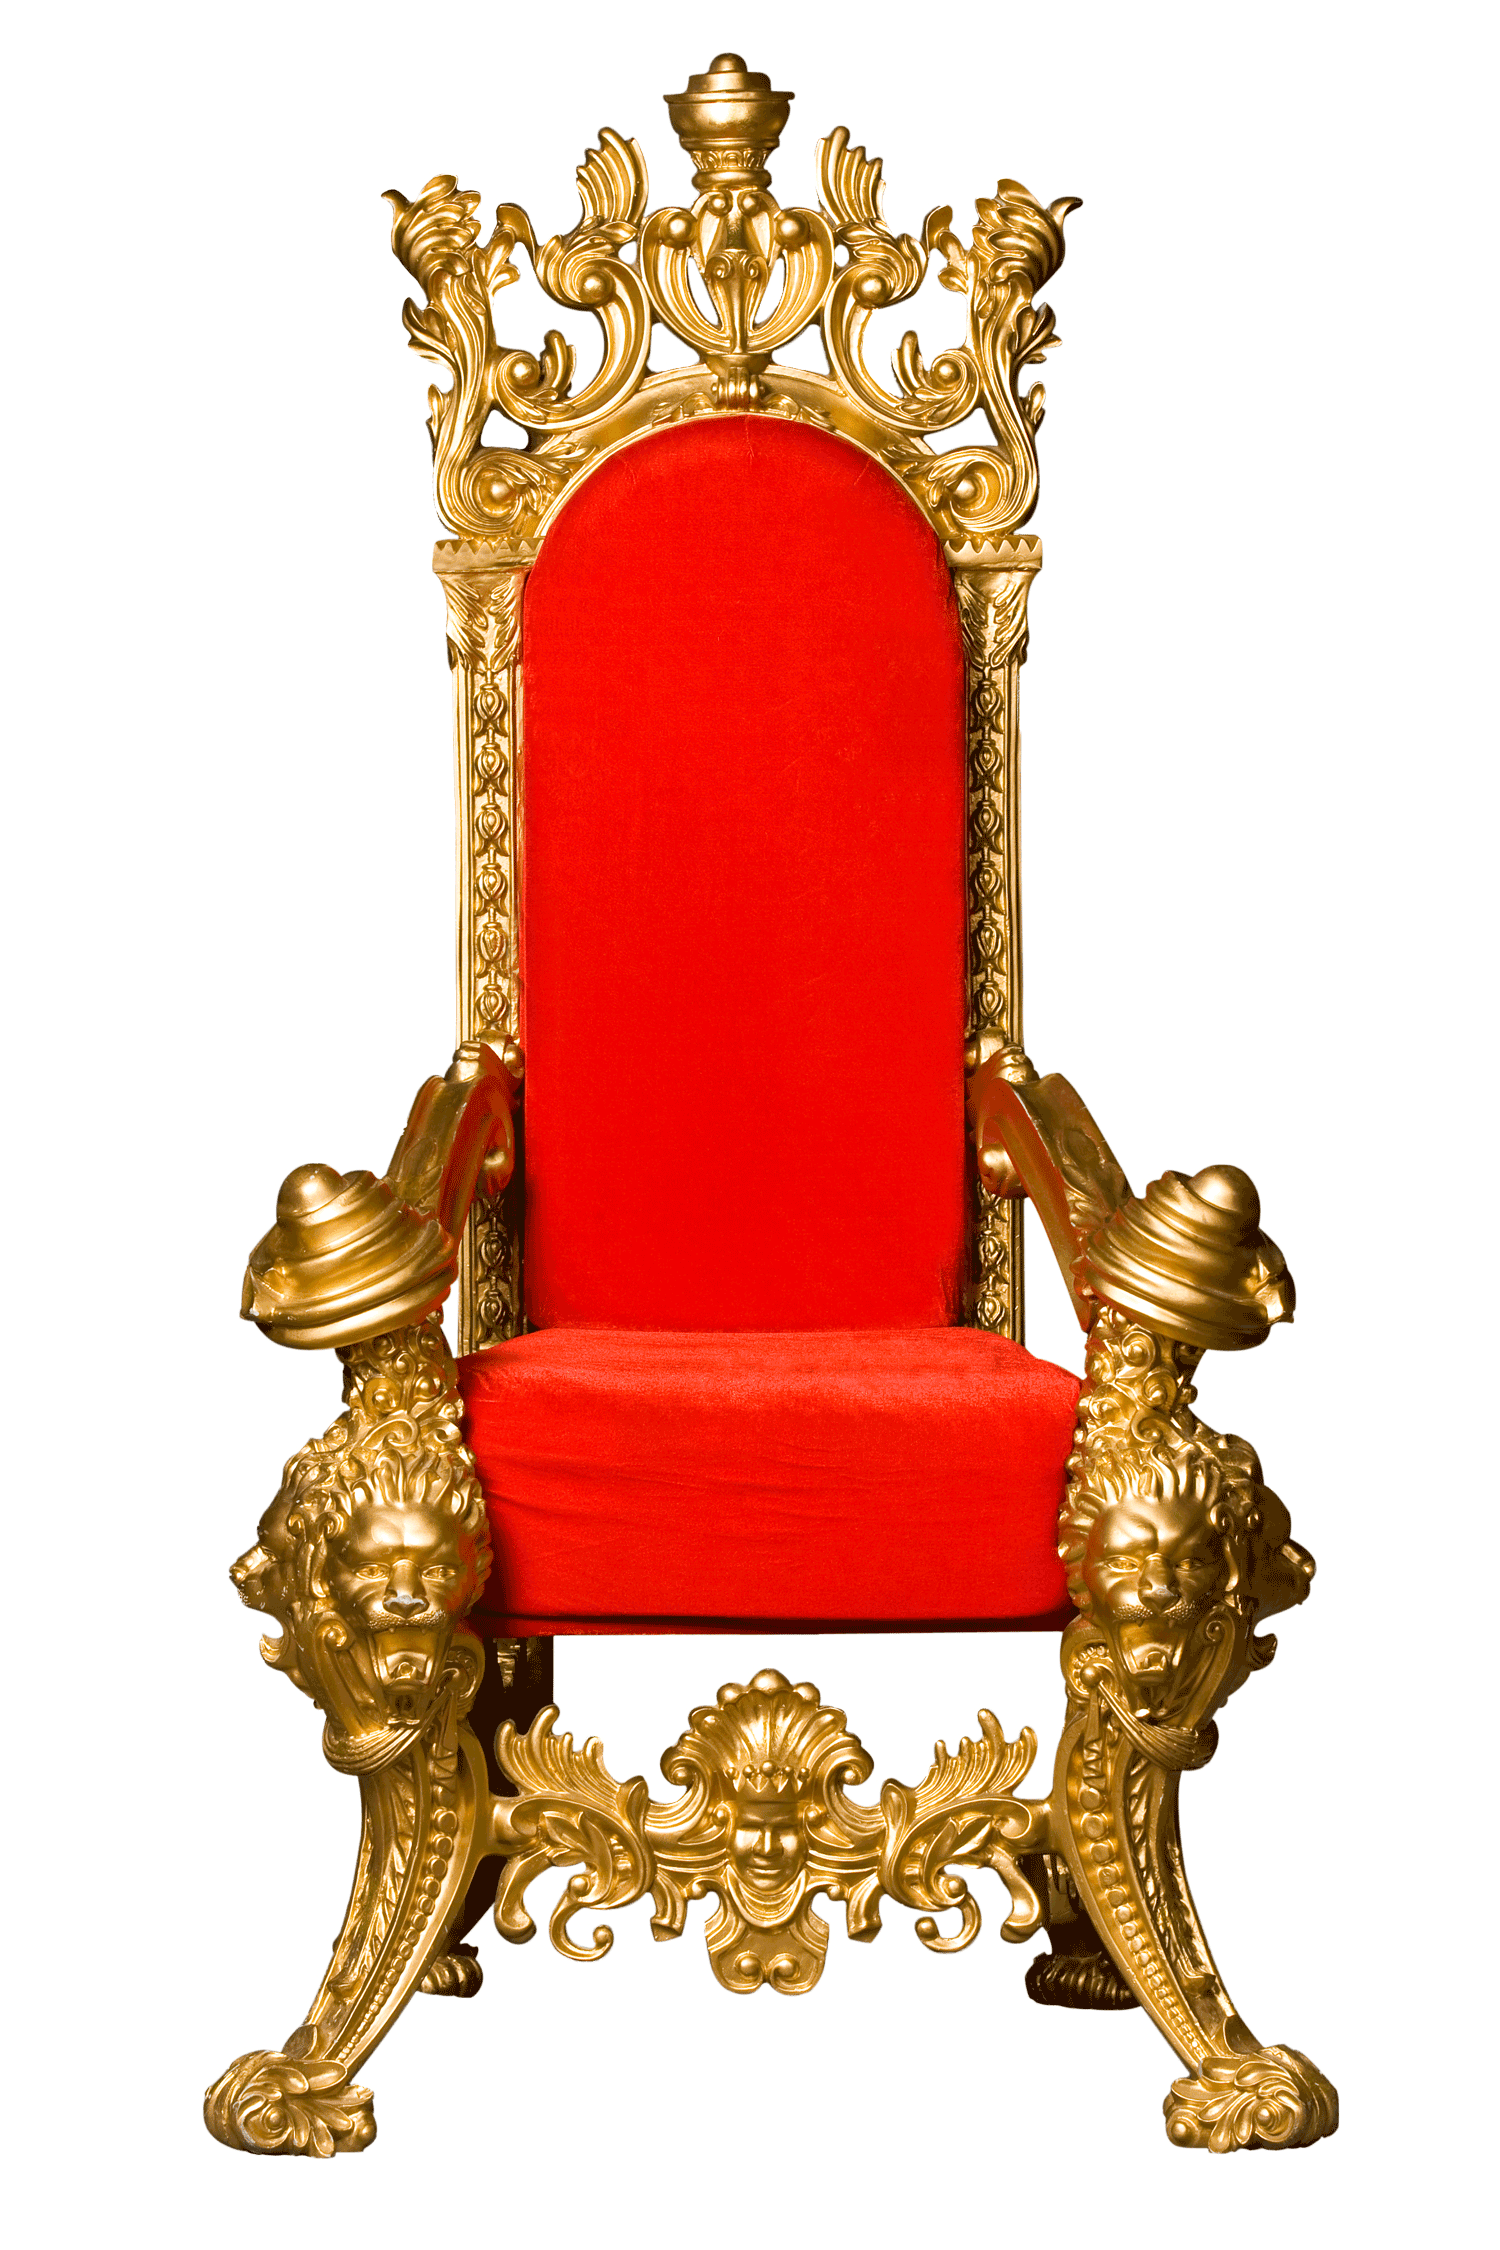 King throne png. Vubiquity thronepng